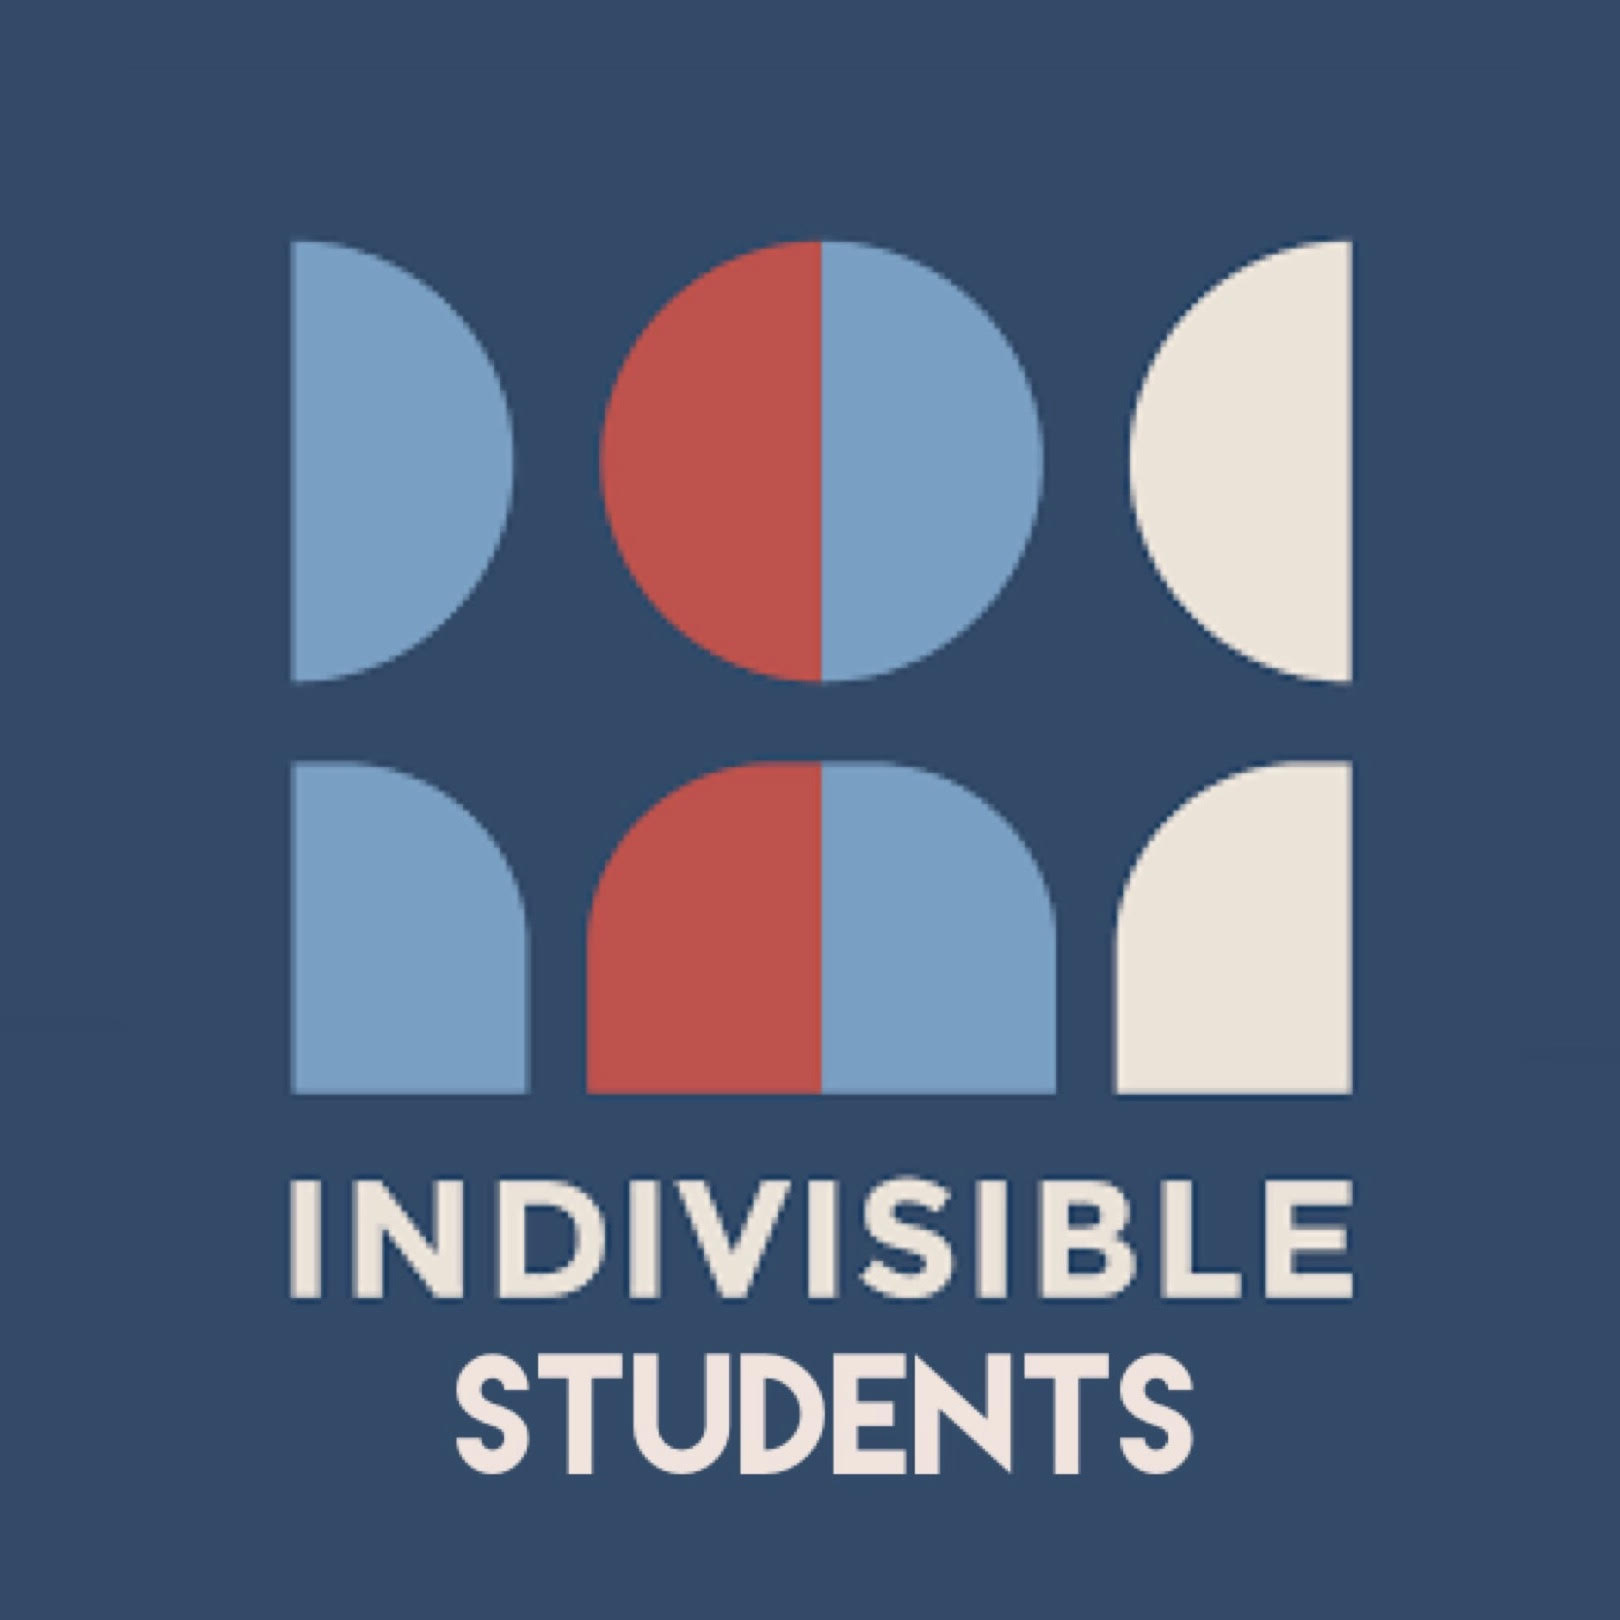 Indivisible Students